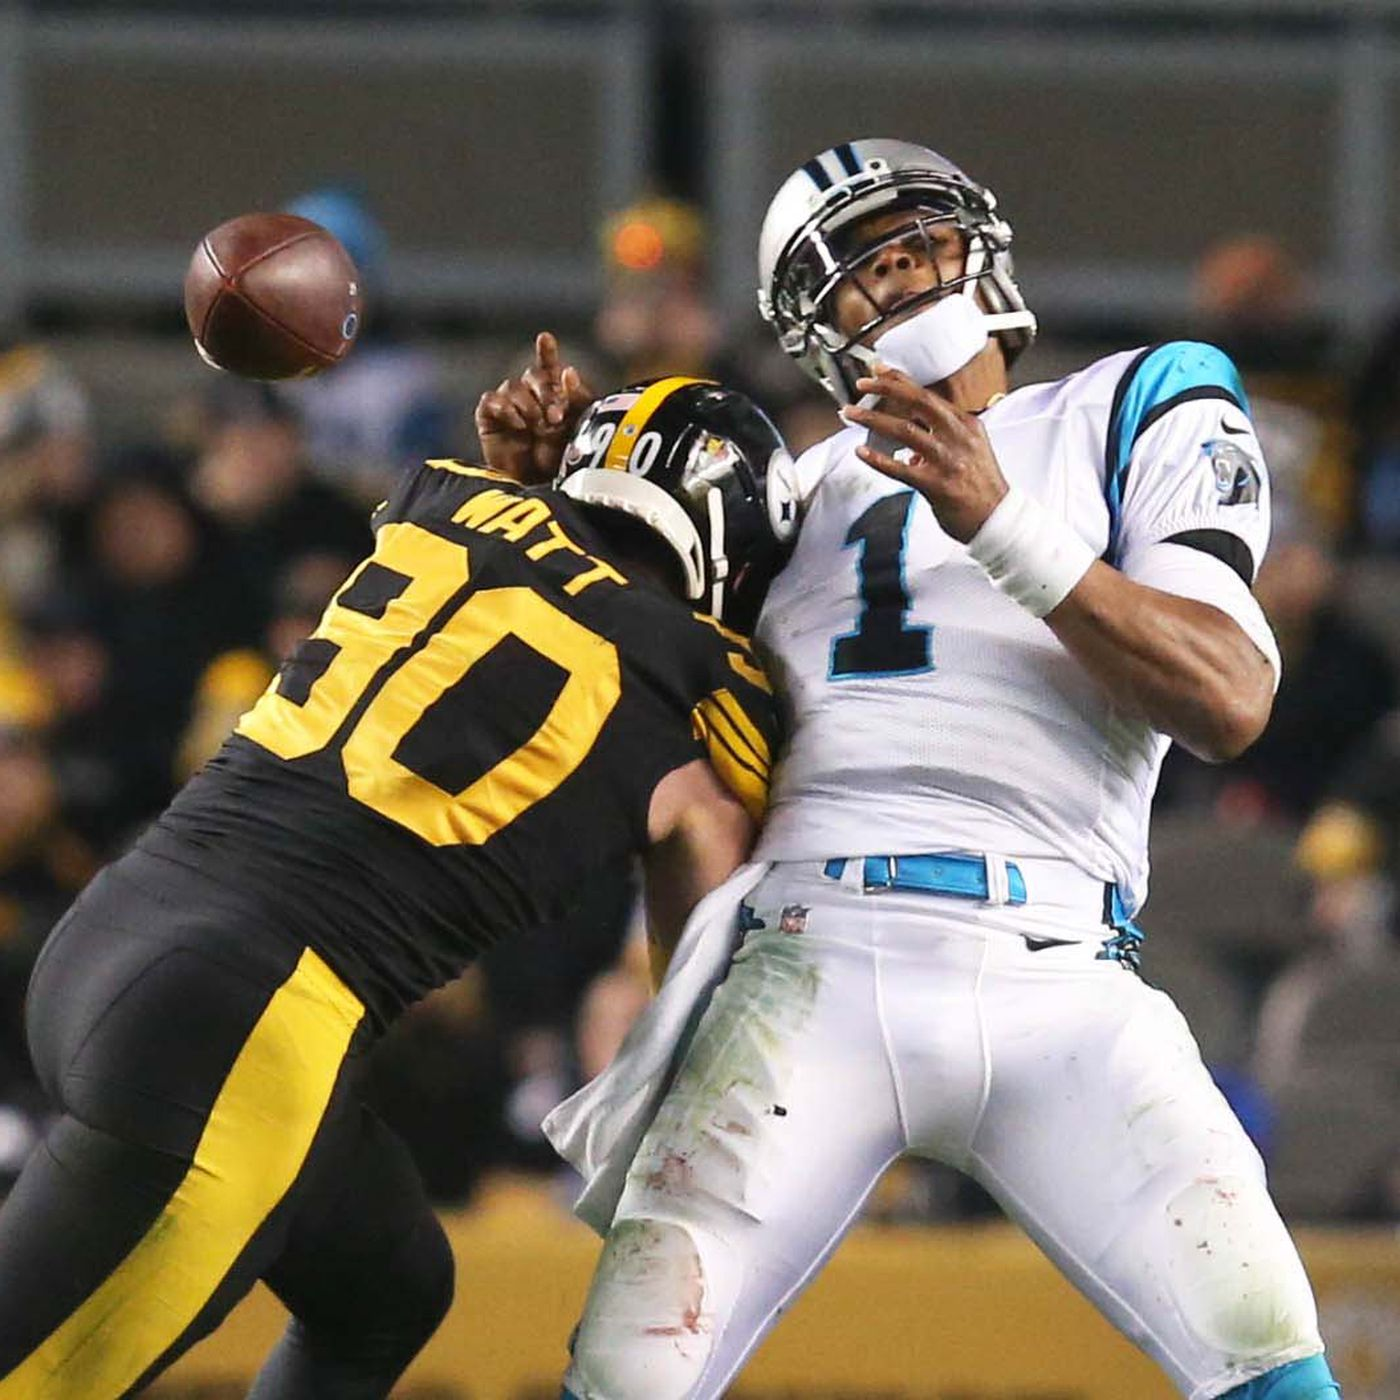 a62b2f9fb Panthers at Steelers final score  Panthers bamboozled by Steelers in 52-21  loss - Cat Scratch Reader